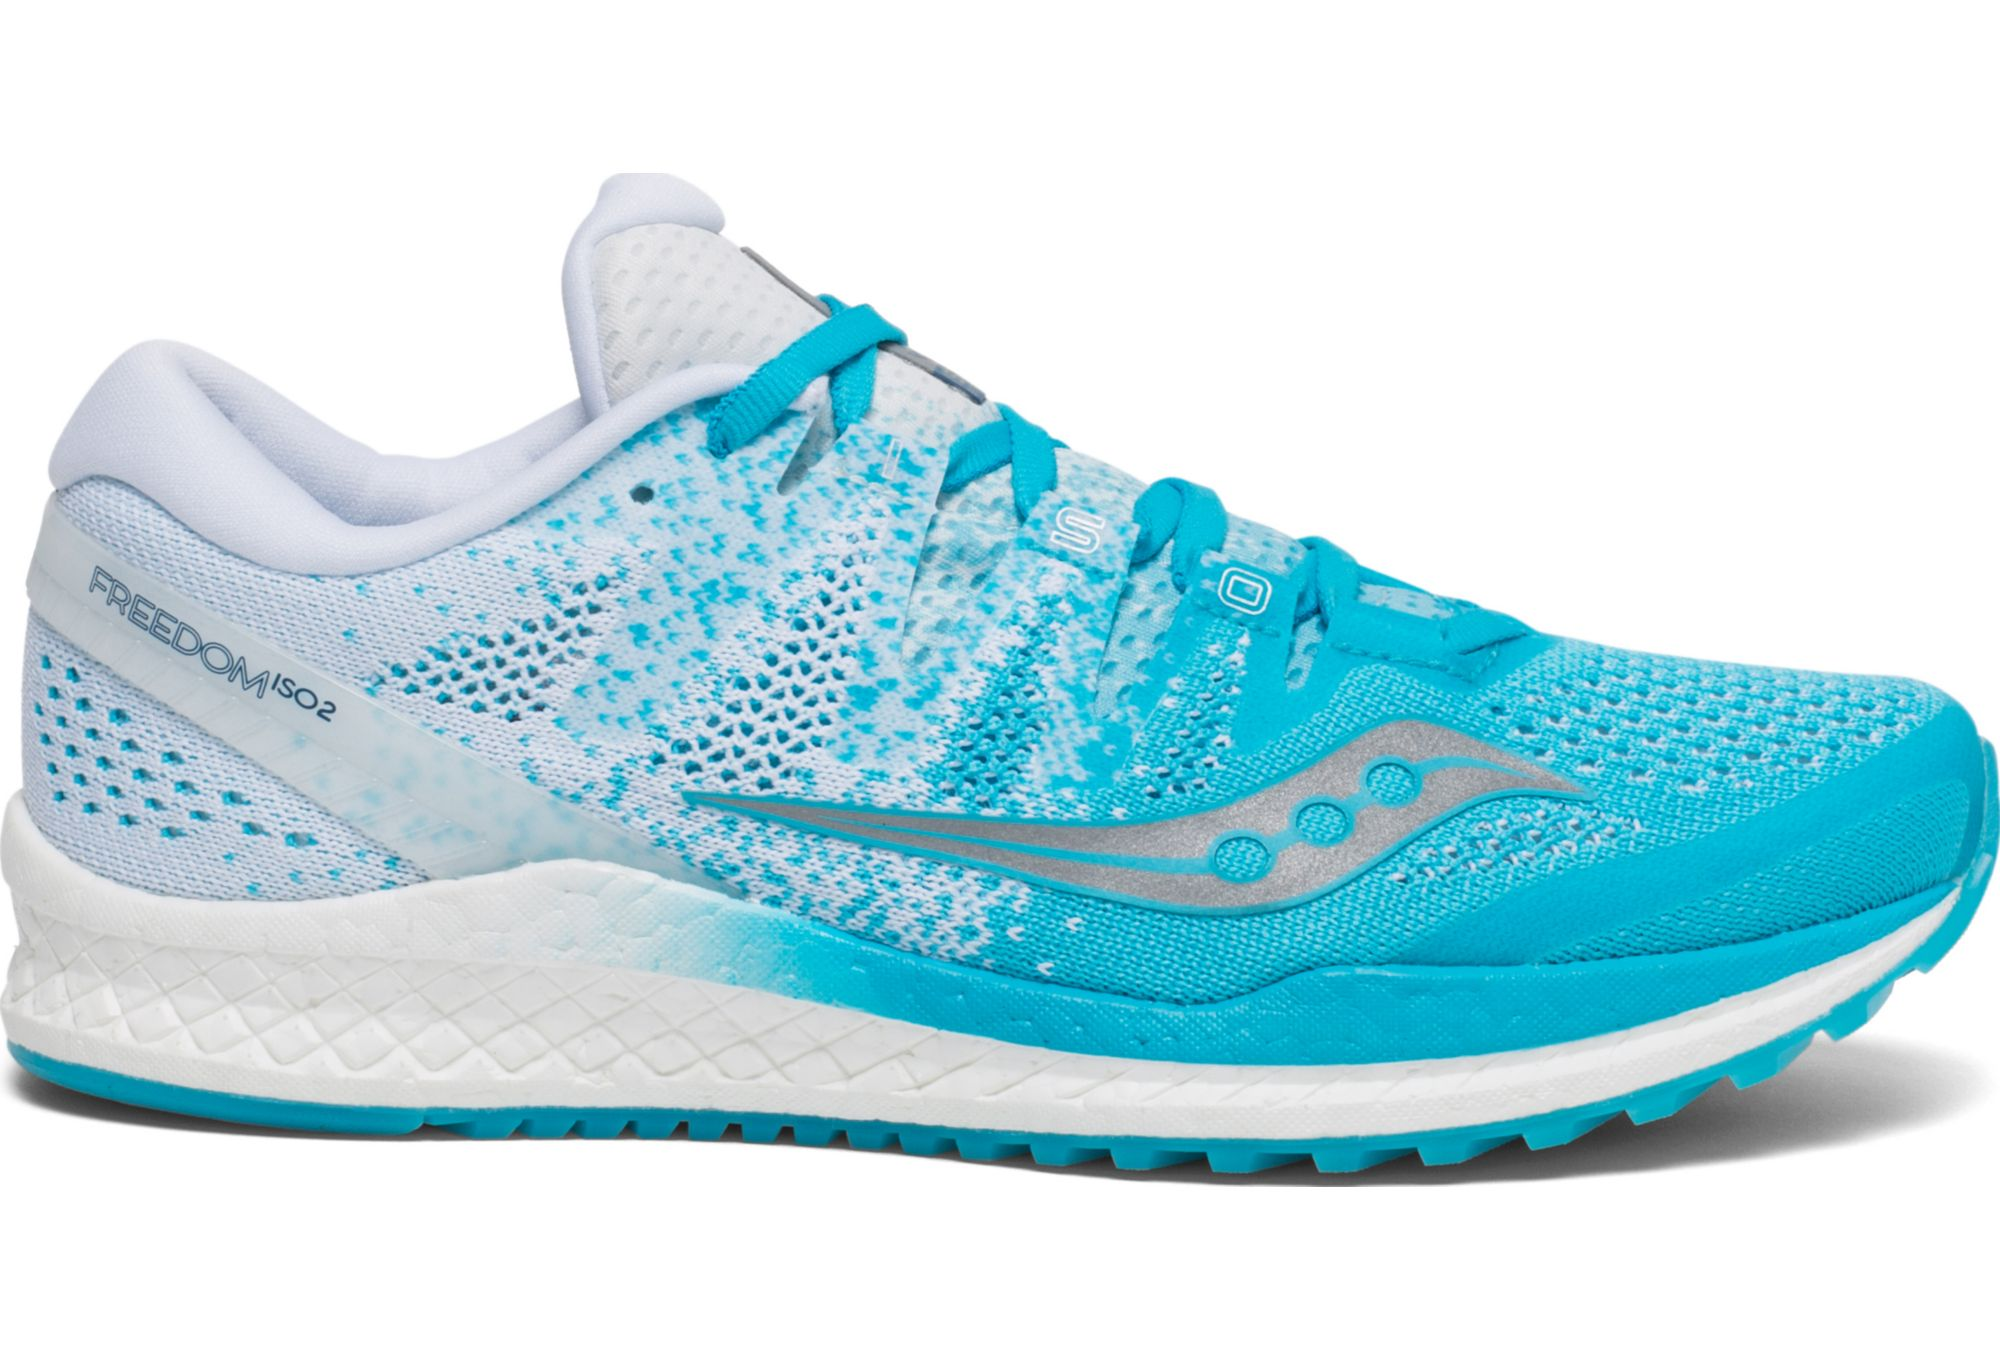 e0b9a92c Saucony Freedom ISO 2 Women's Running Shoes Blue White | Alltricks.com